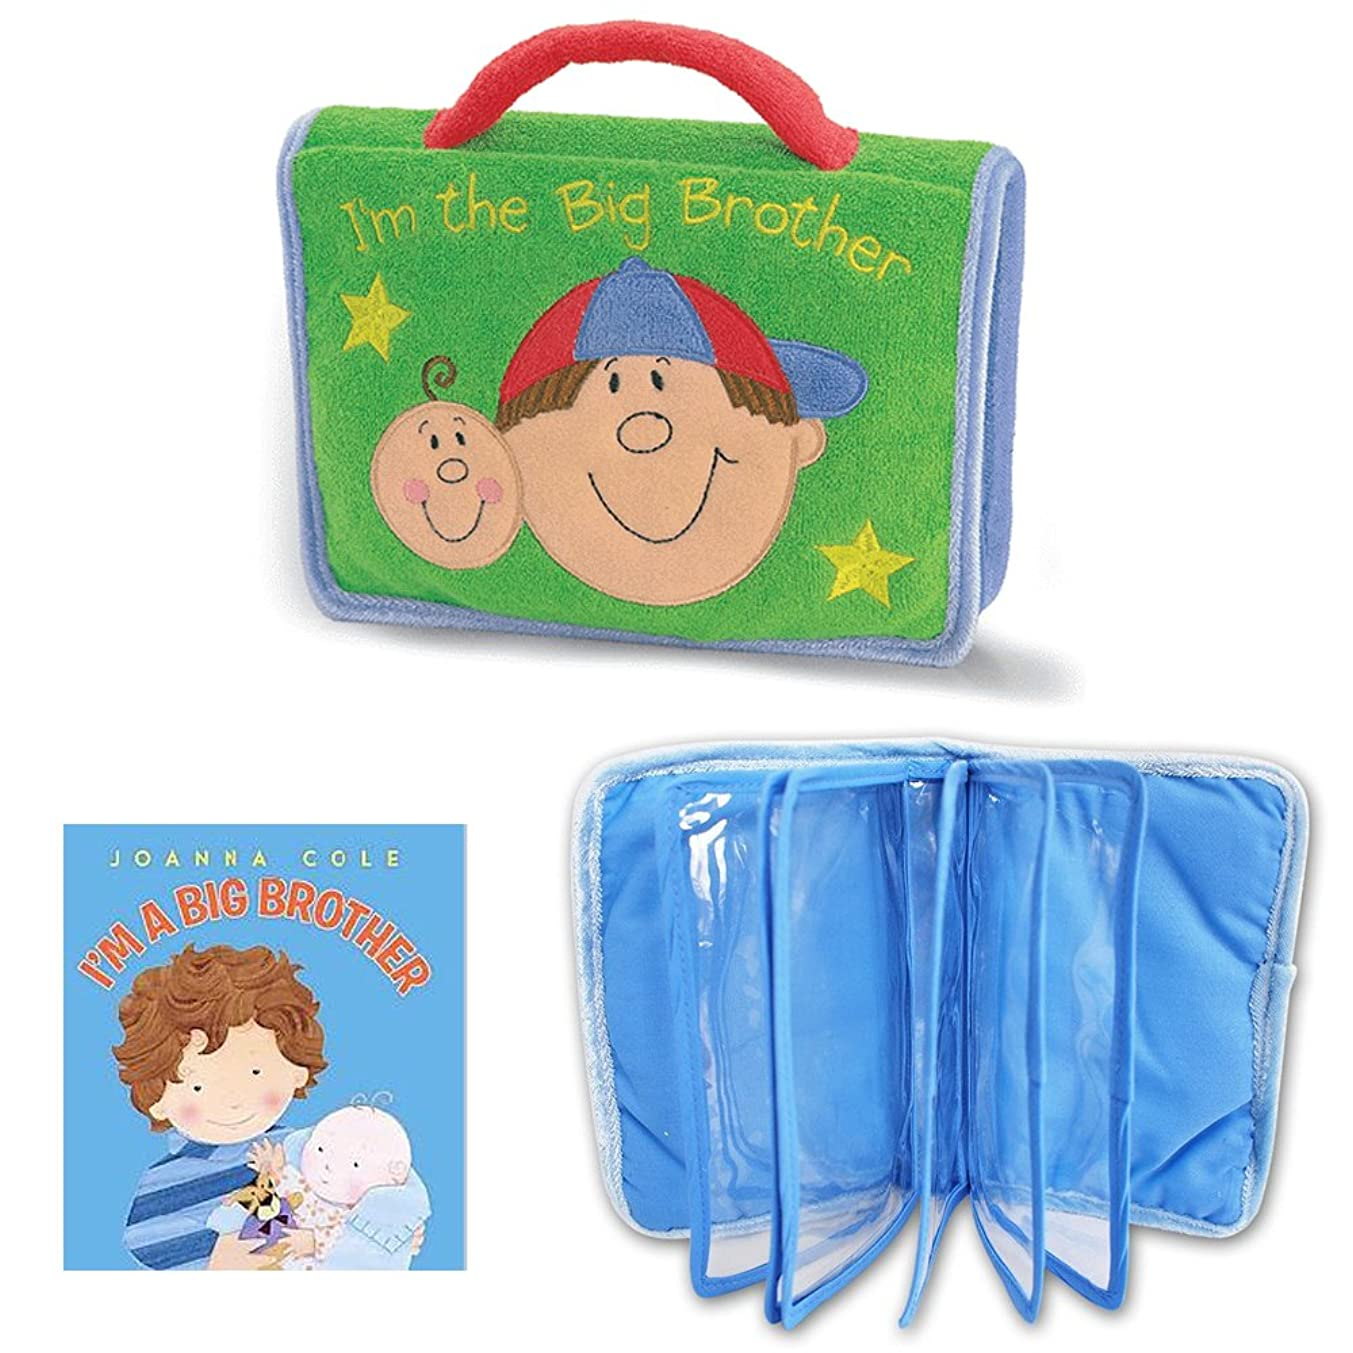 I'm a Big Brother Gift Bundle- Big Brother Photo Album & Big Brother Book